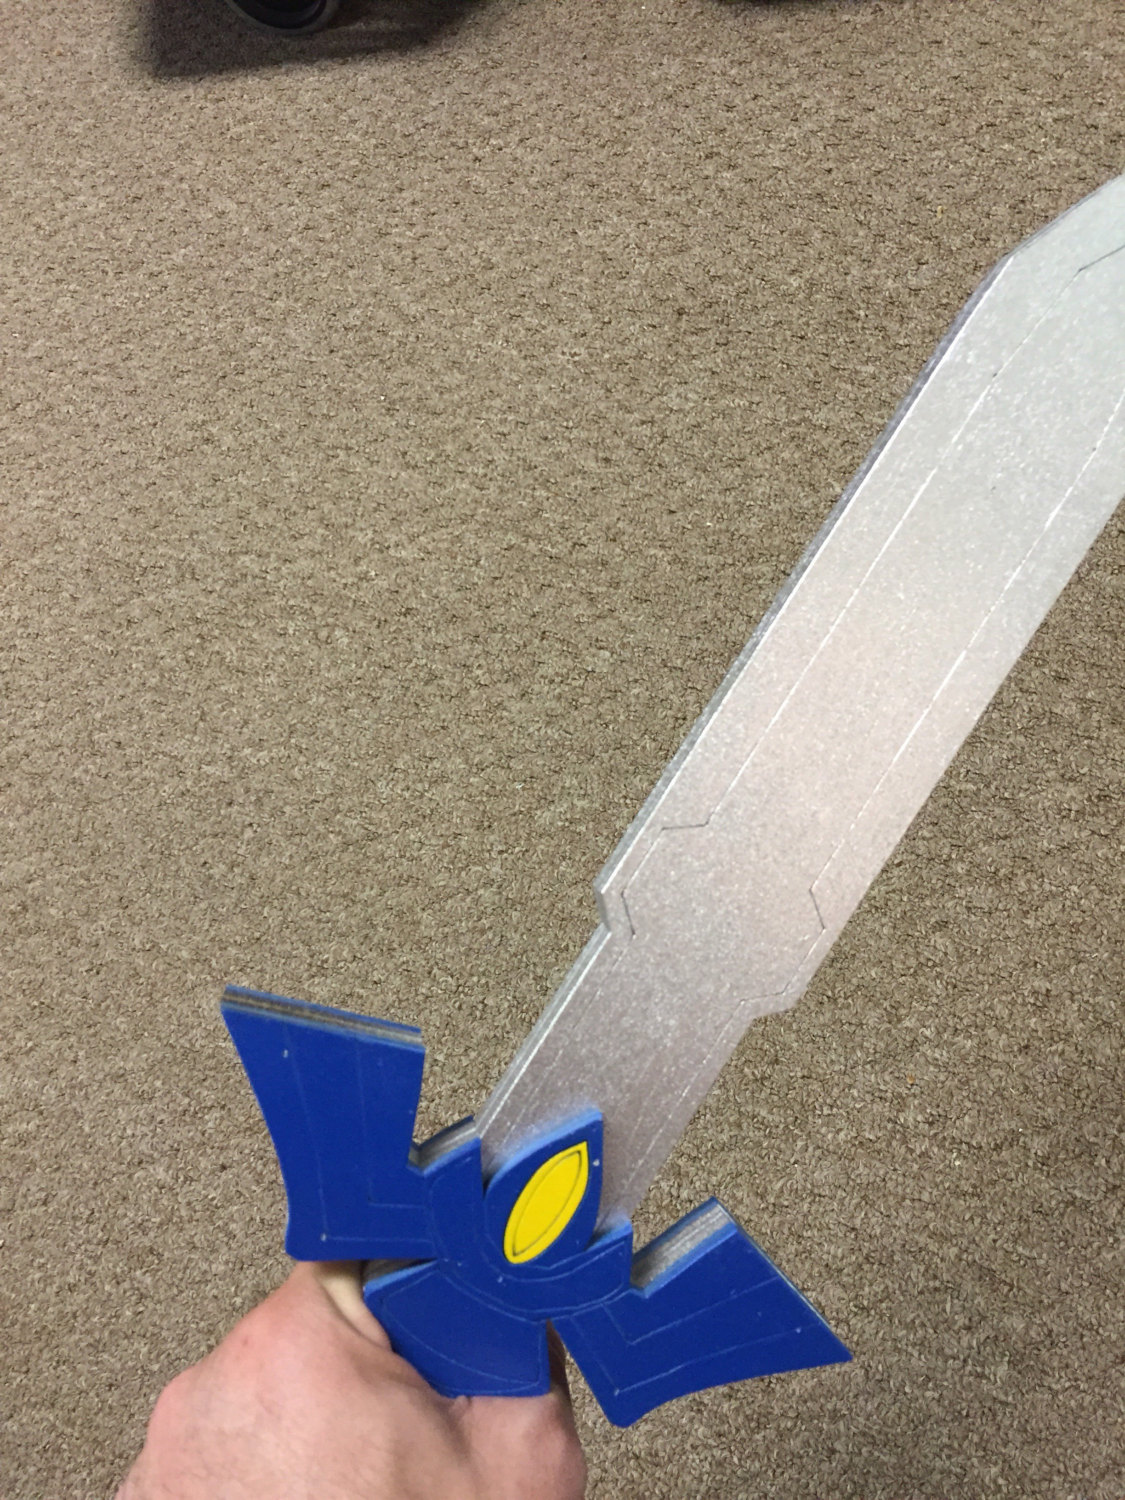 93 Origami Master Sword After Cutting Along The Shape With A Narsil Origamiyard 17 Link